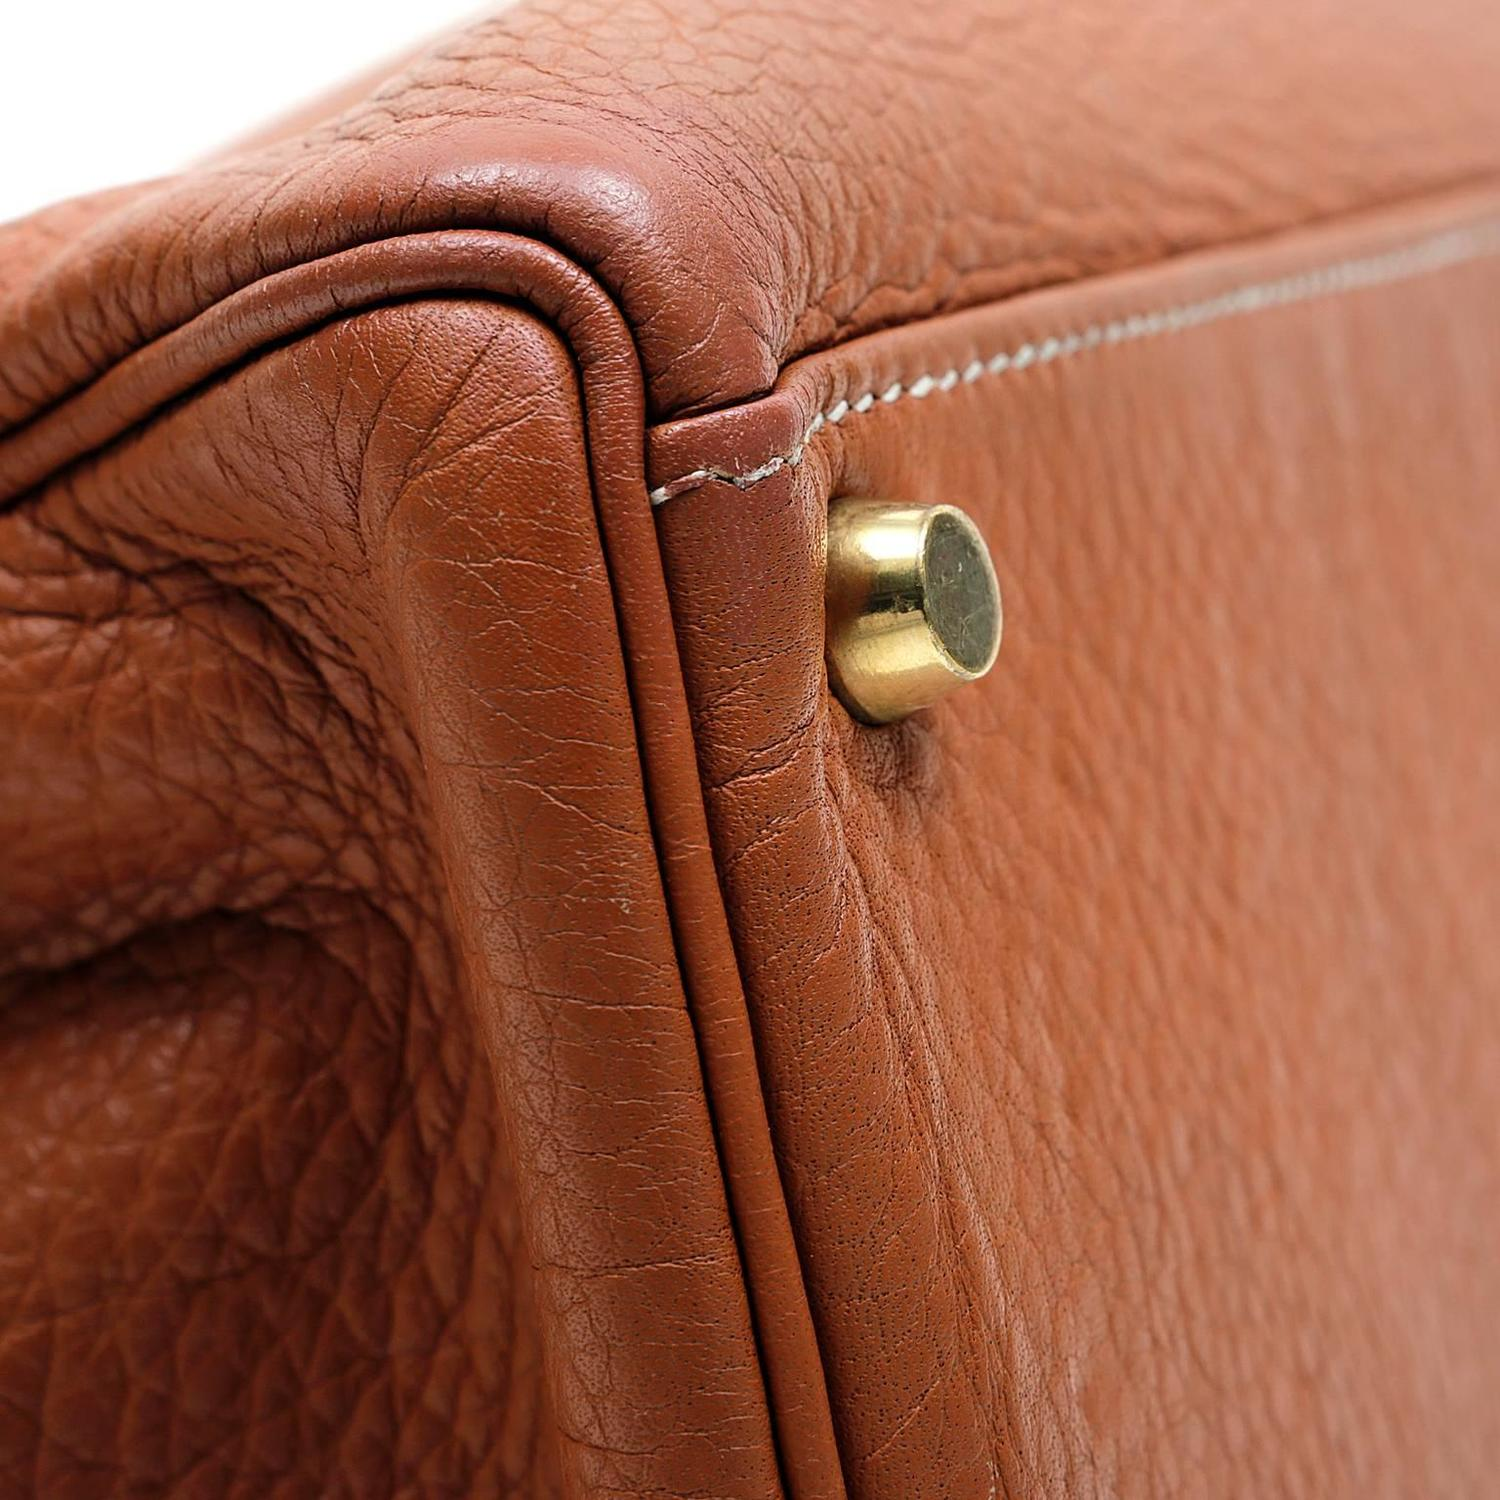 cheap hermes bags - Herm��s Terracotta Togo Leather 40 cm Kelly Bag, GHW at 1stdibs